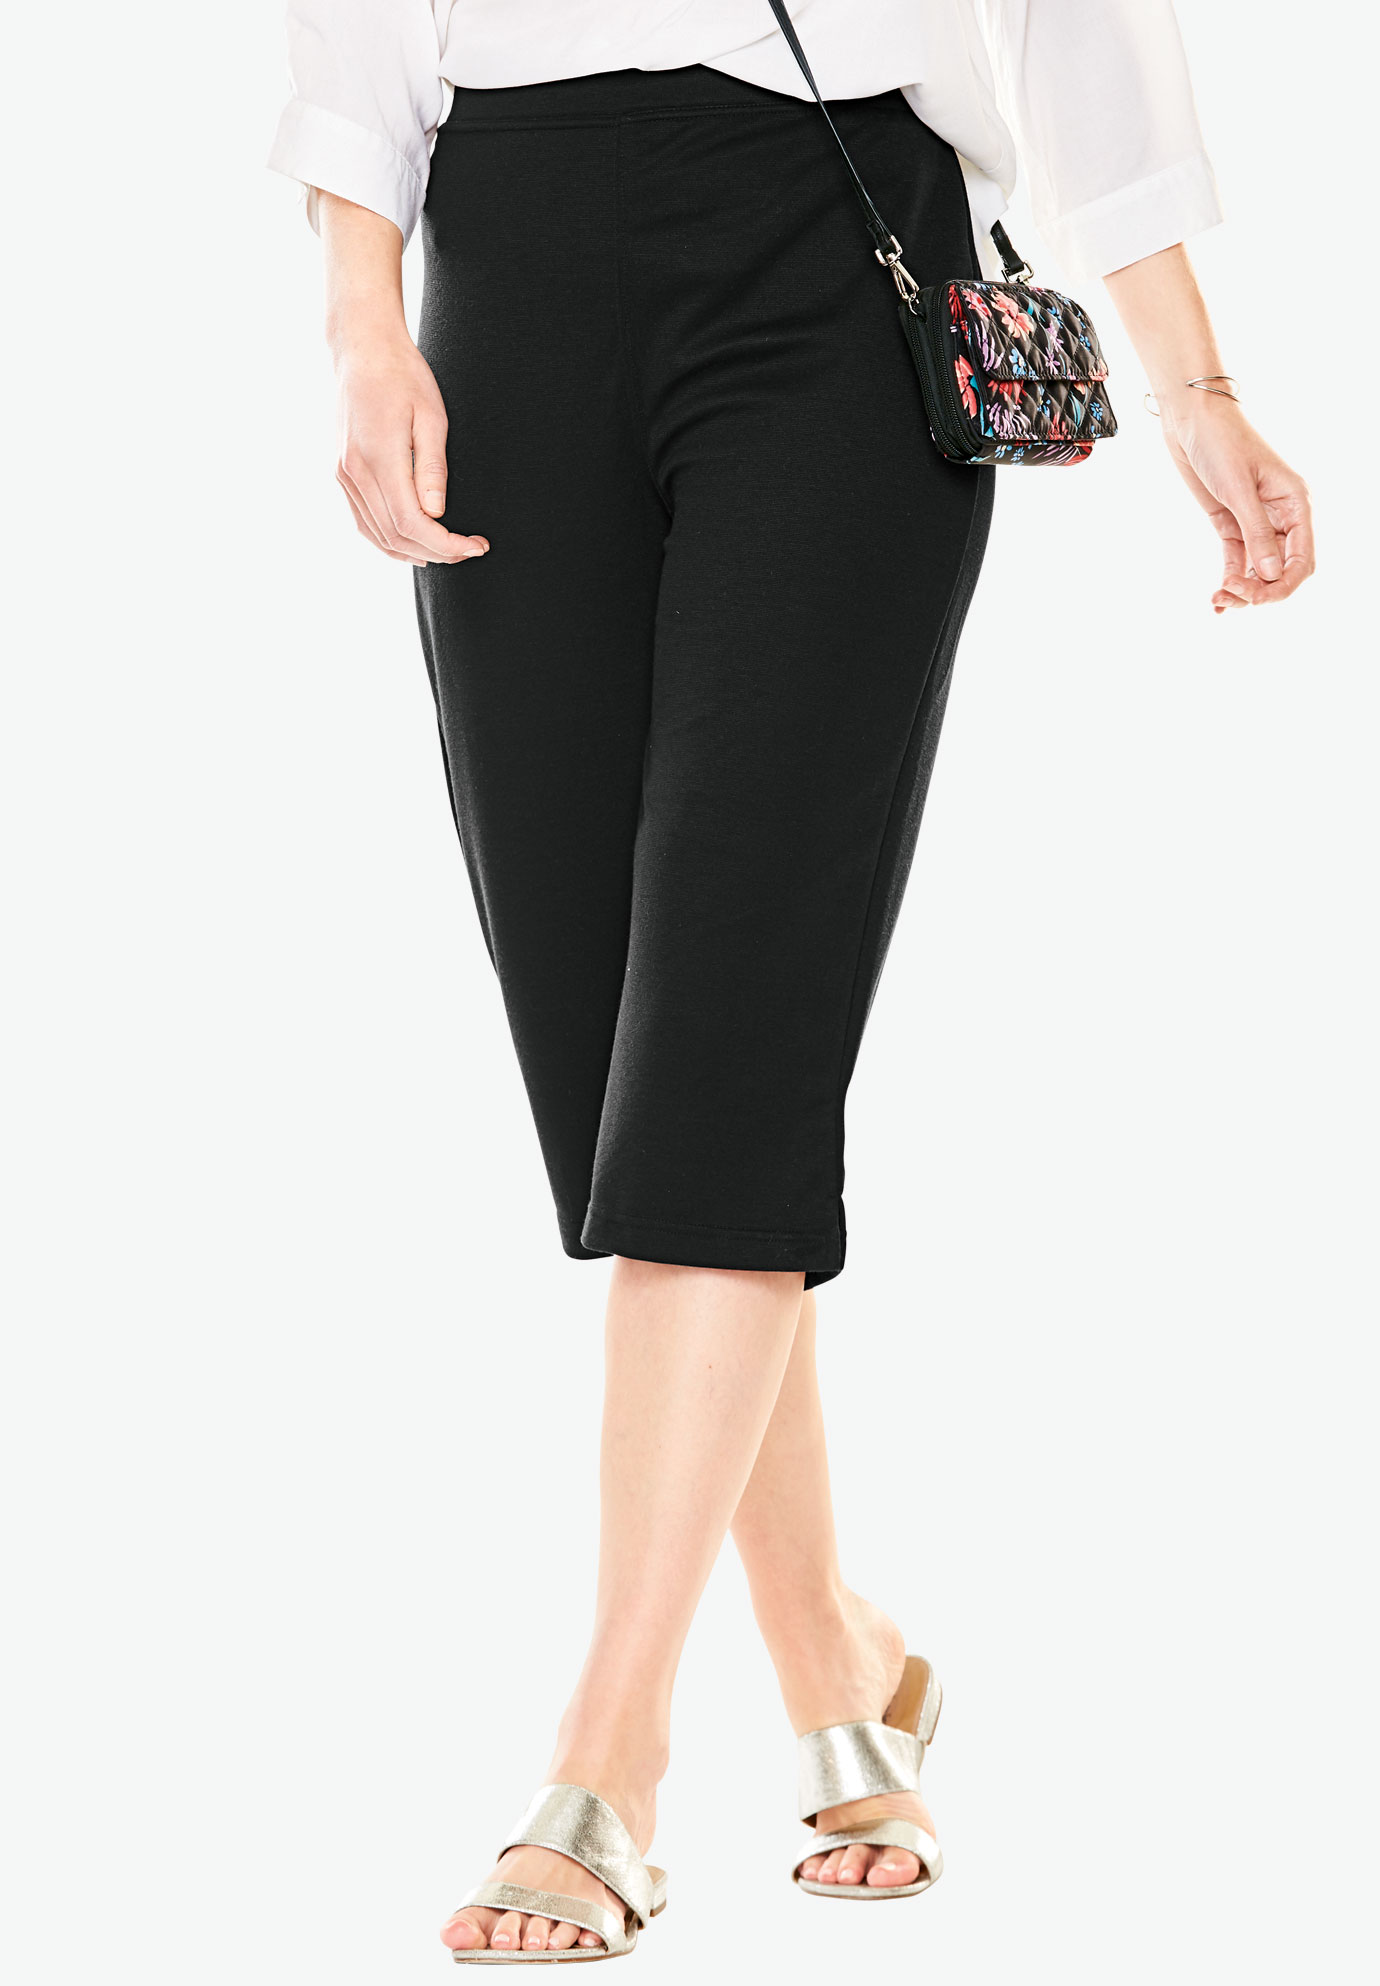 Capri length ponte knit pants,